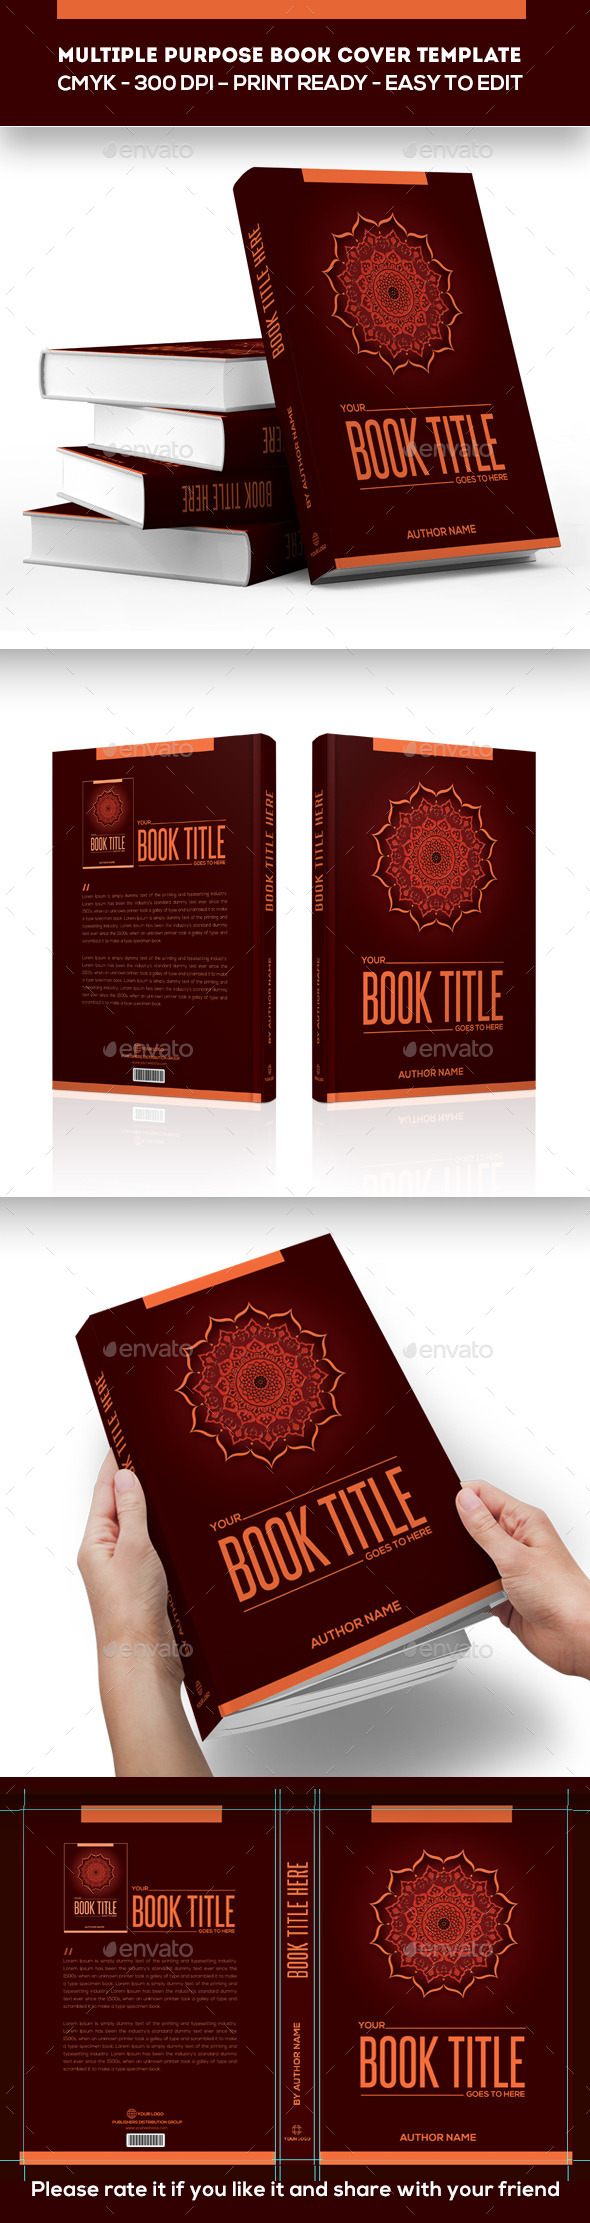 Multiple Purpose Book Cover Template - Print Templates